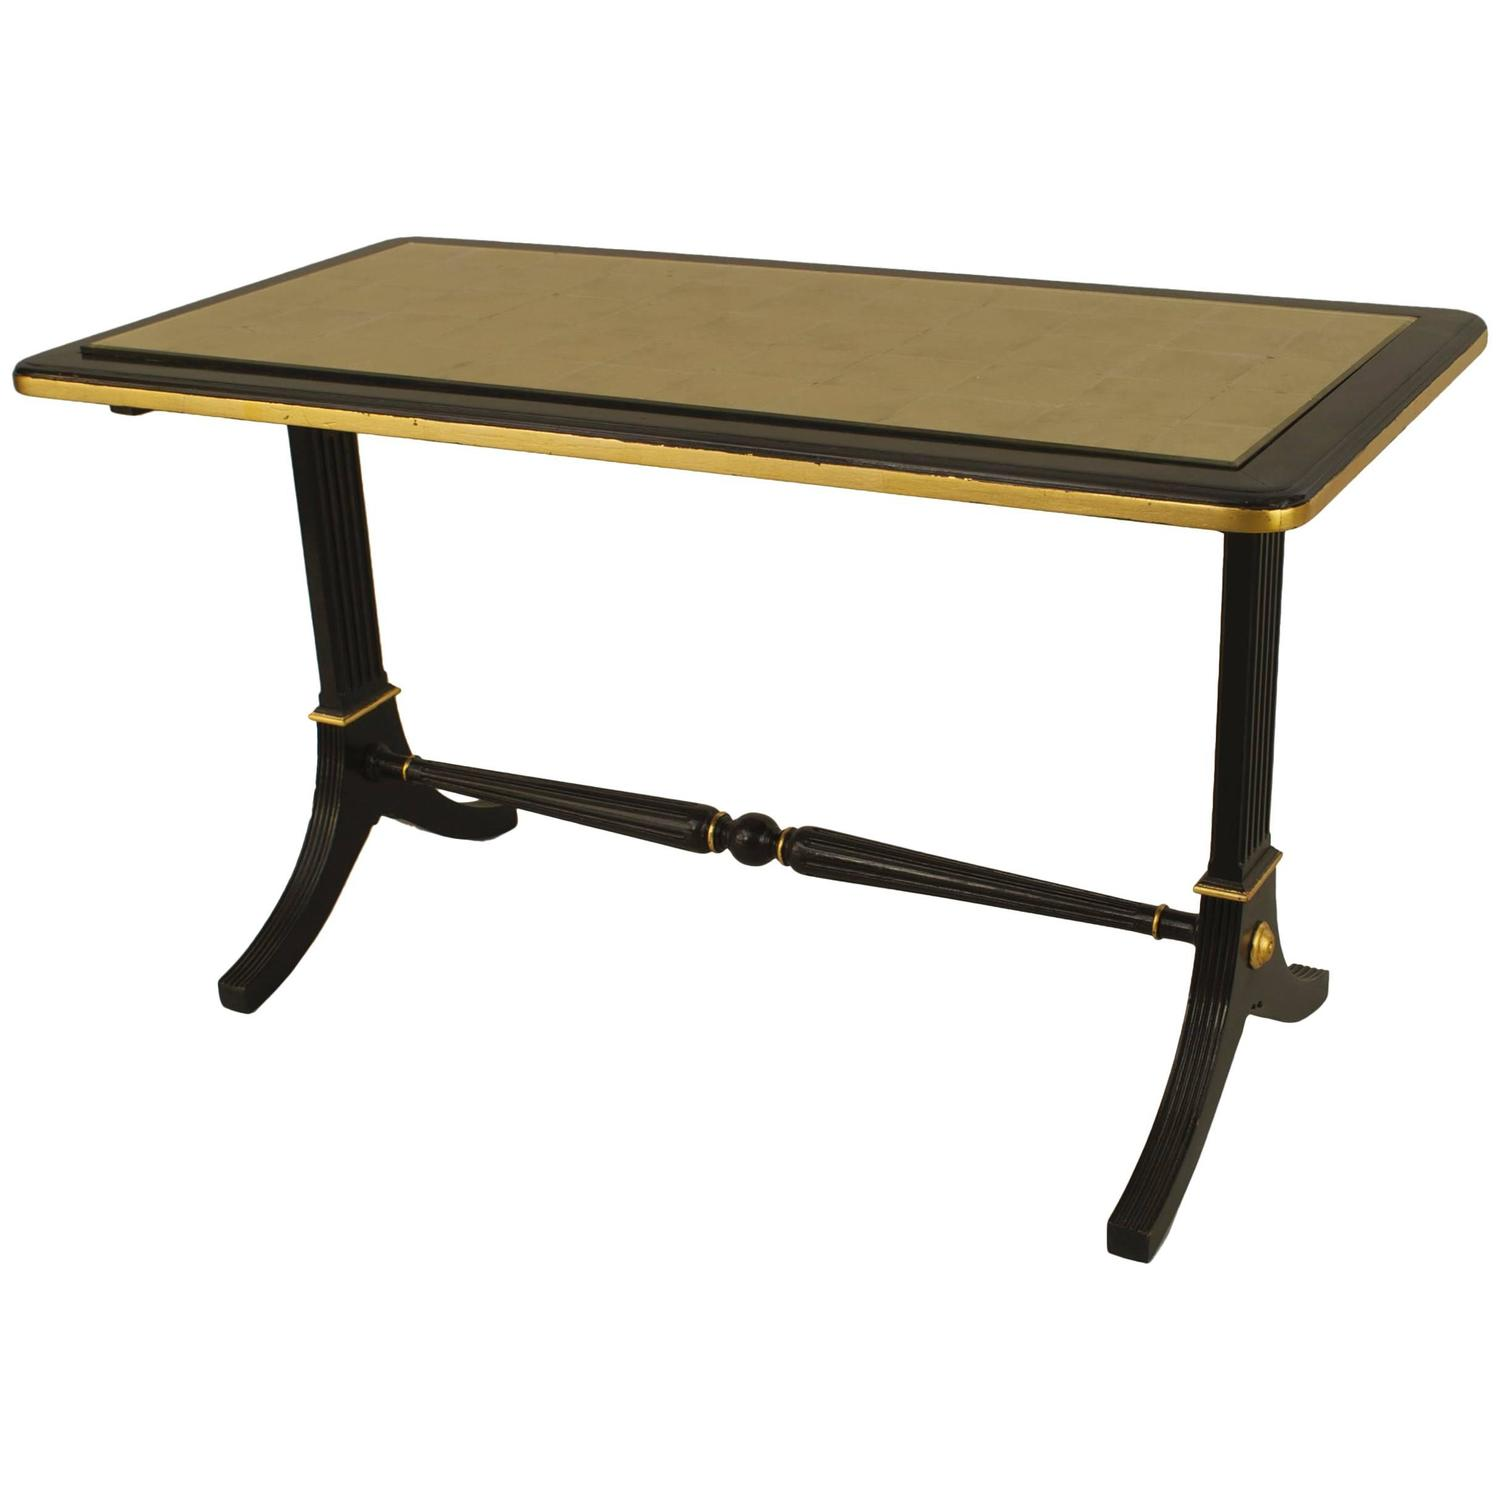 French Gilt Coffee Table: 1940s French Gilt Glass And Ebonized Wood Coffee Table By